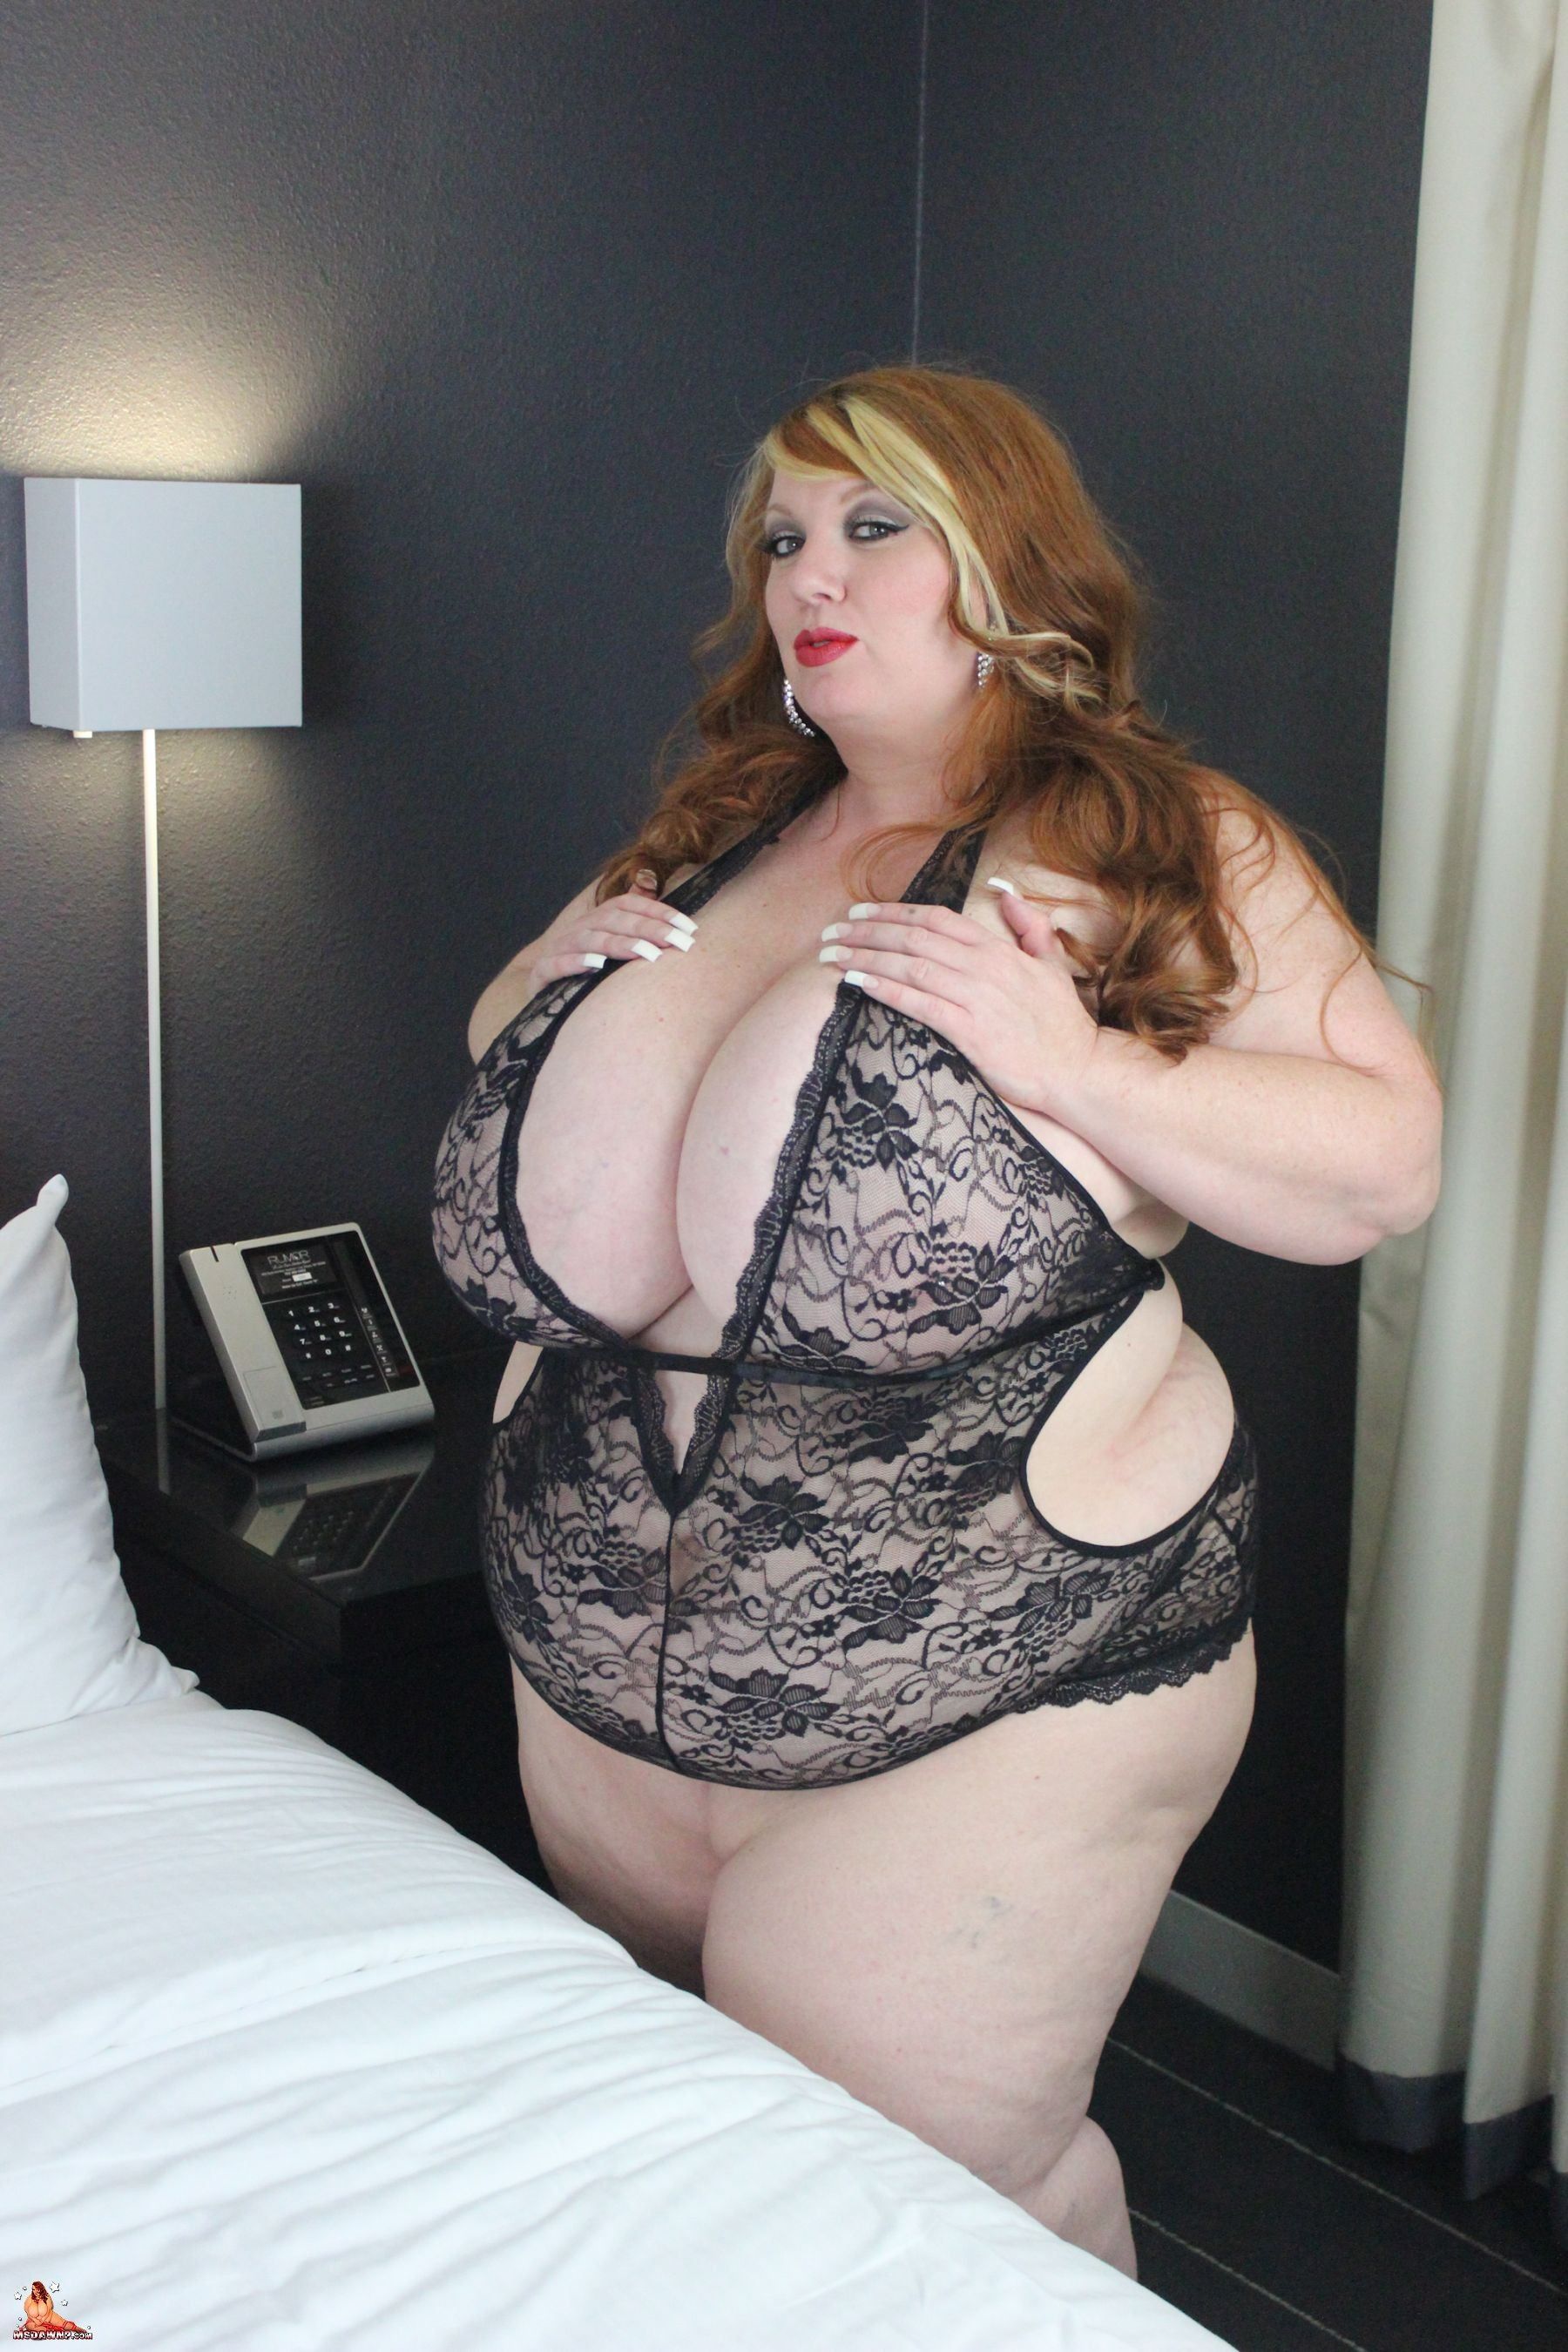 bbw big butt fat pic tit - adult videos